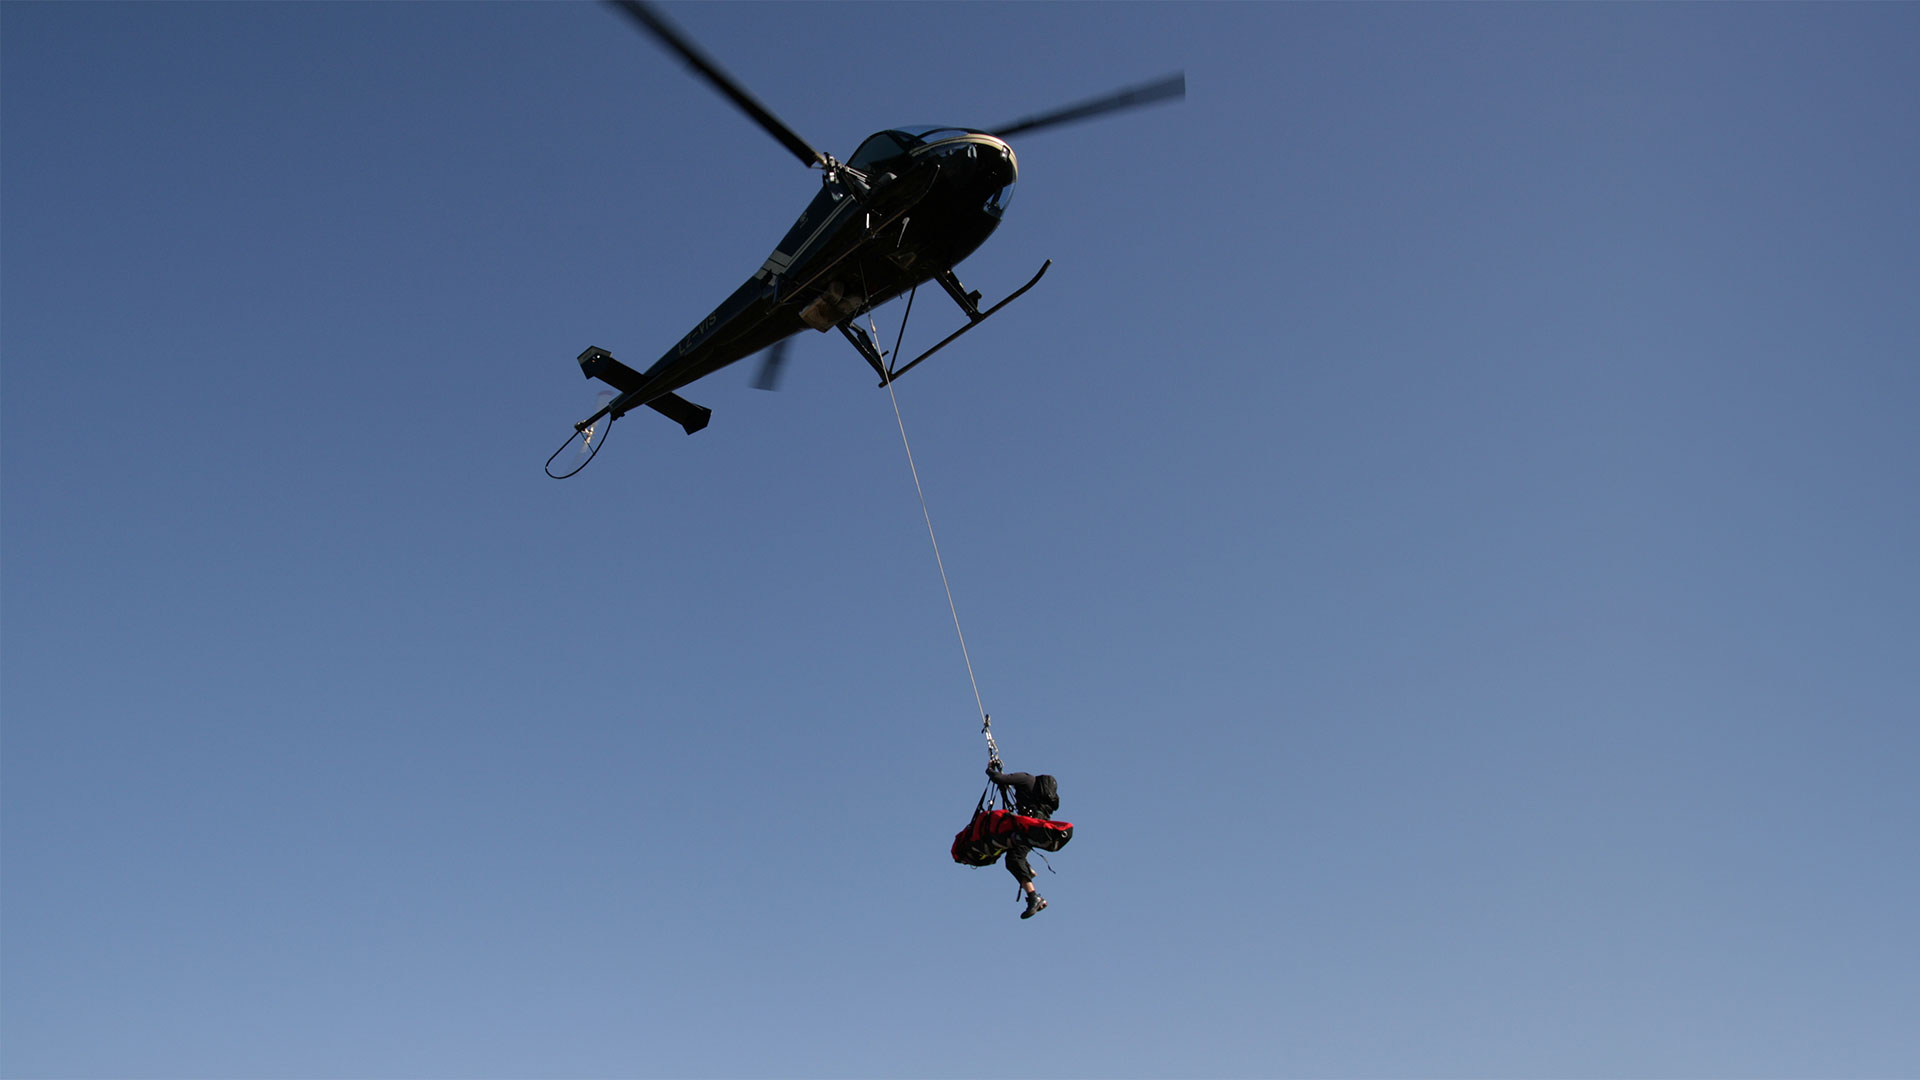 World's First Volunteer Rope Access Rescue Team